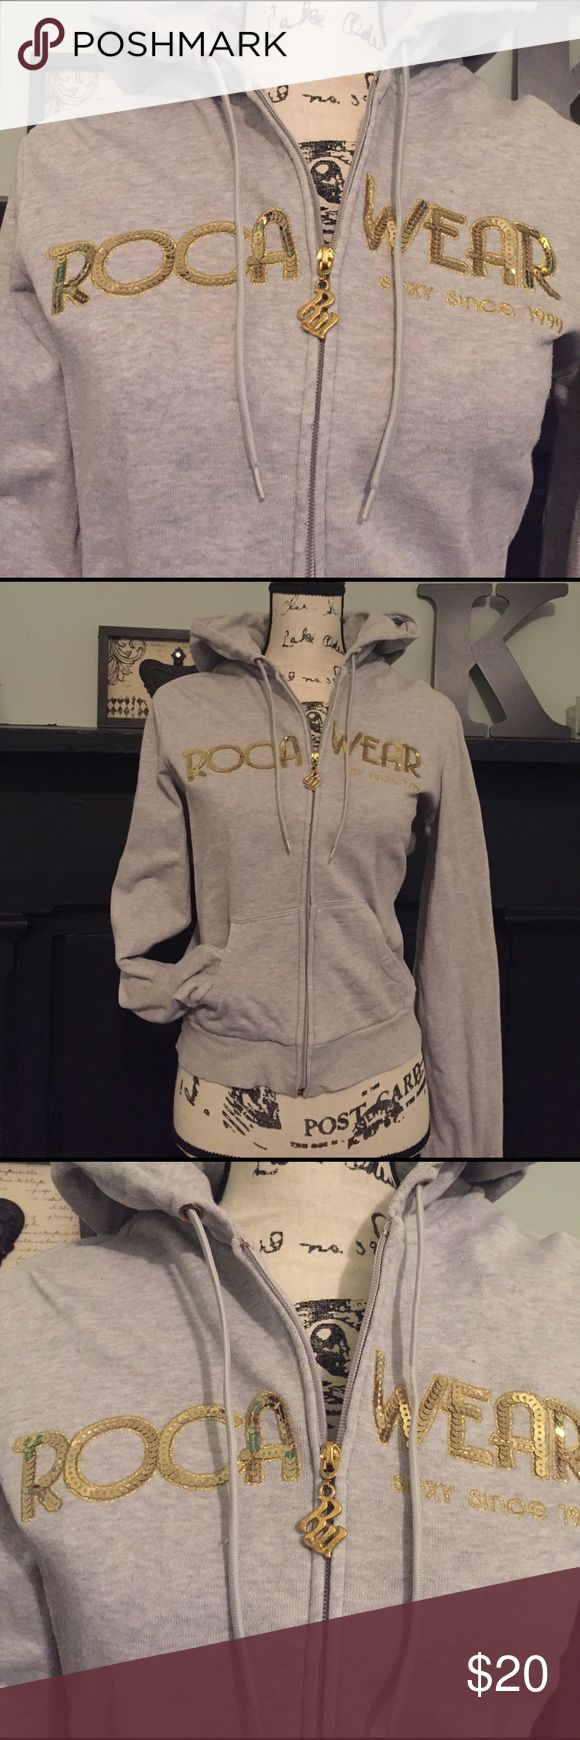 ✨SEXY ROCAWEAR HOODIE ✨ 💫LIKE NEW💫. You can dress this up  or down!! Sequined Rocawear logo with gold zip up accents!! Excellent condition!!! Rocawear Tops Sweatshirts & Hoodies